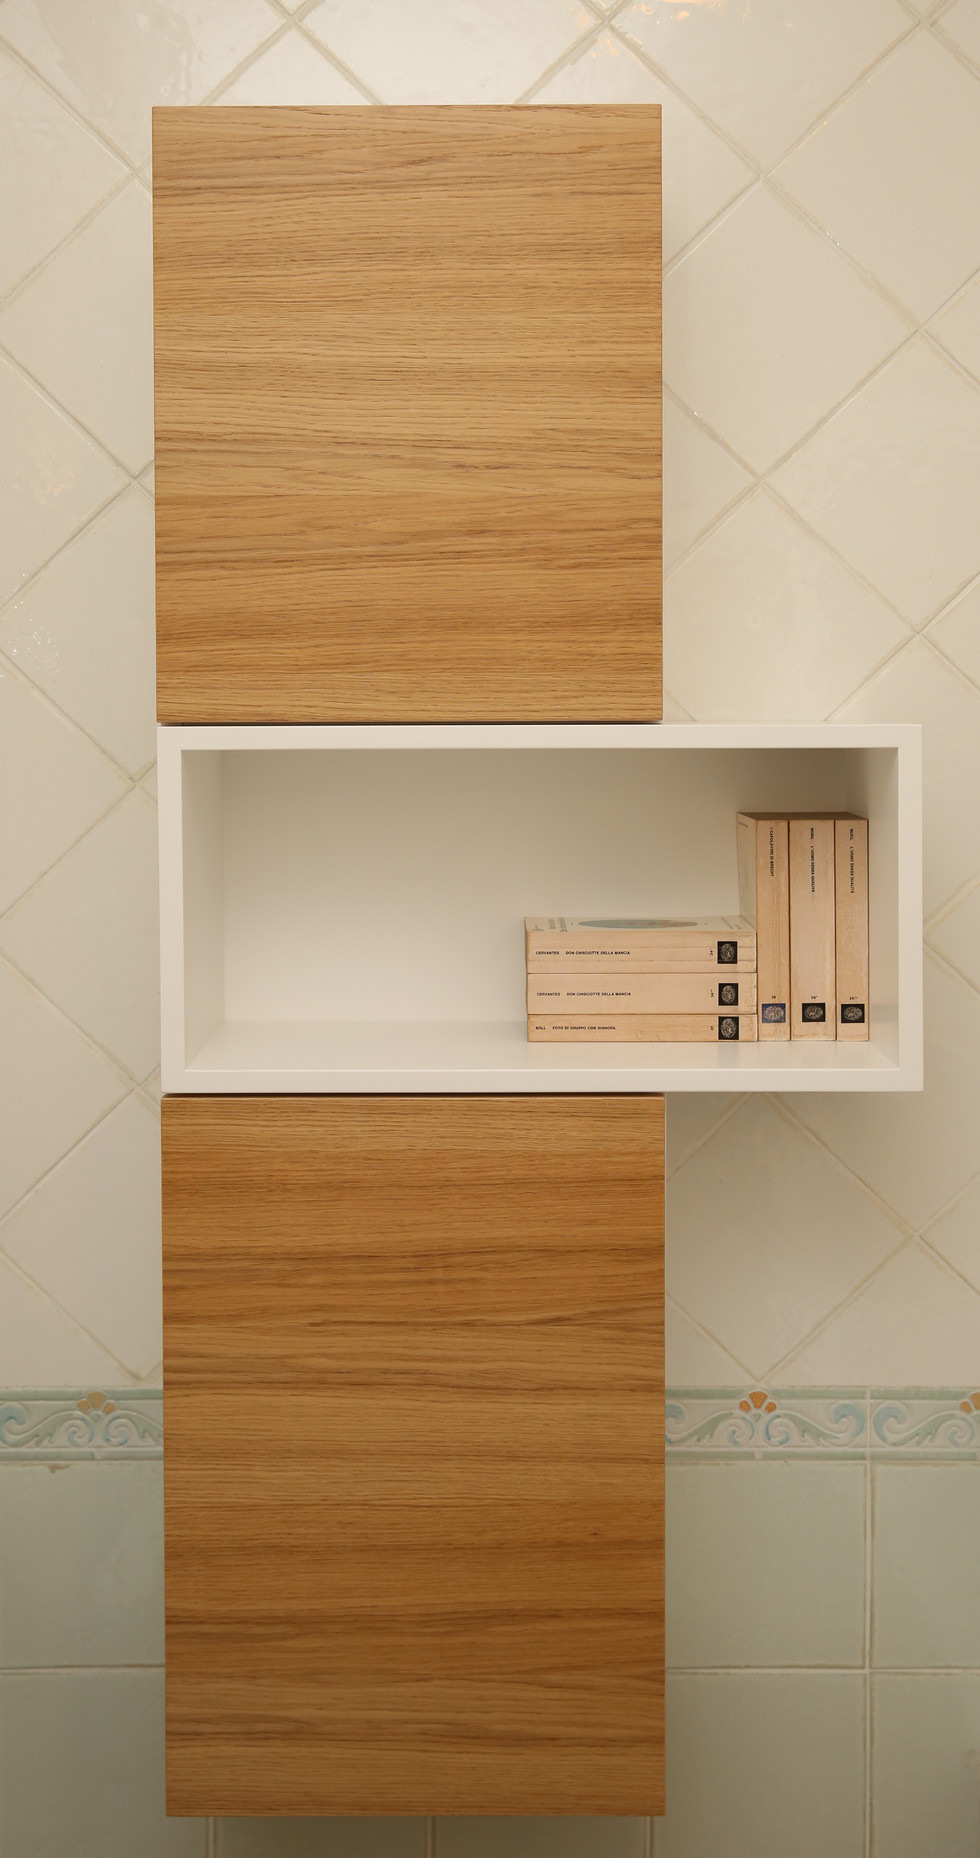 wood-snake-aaa-connected-ideas-product-d